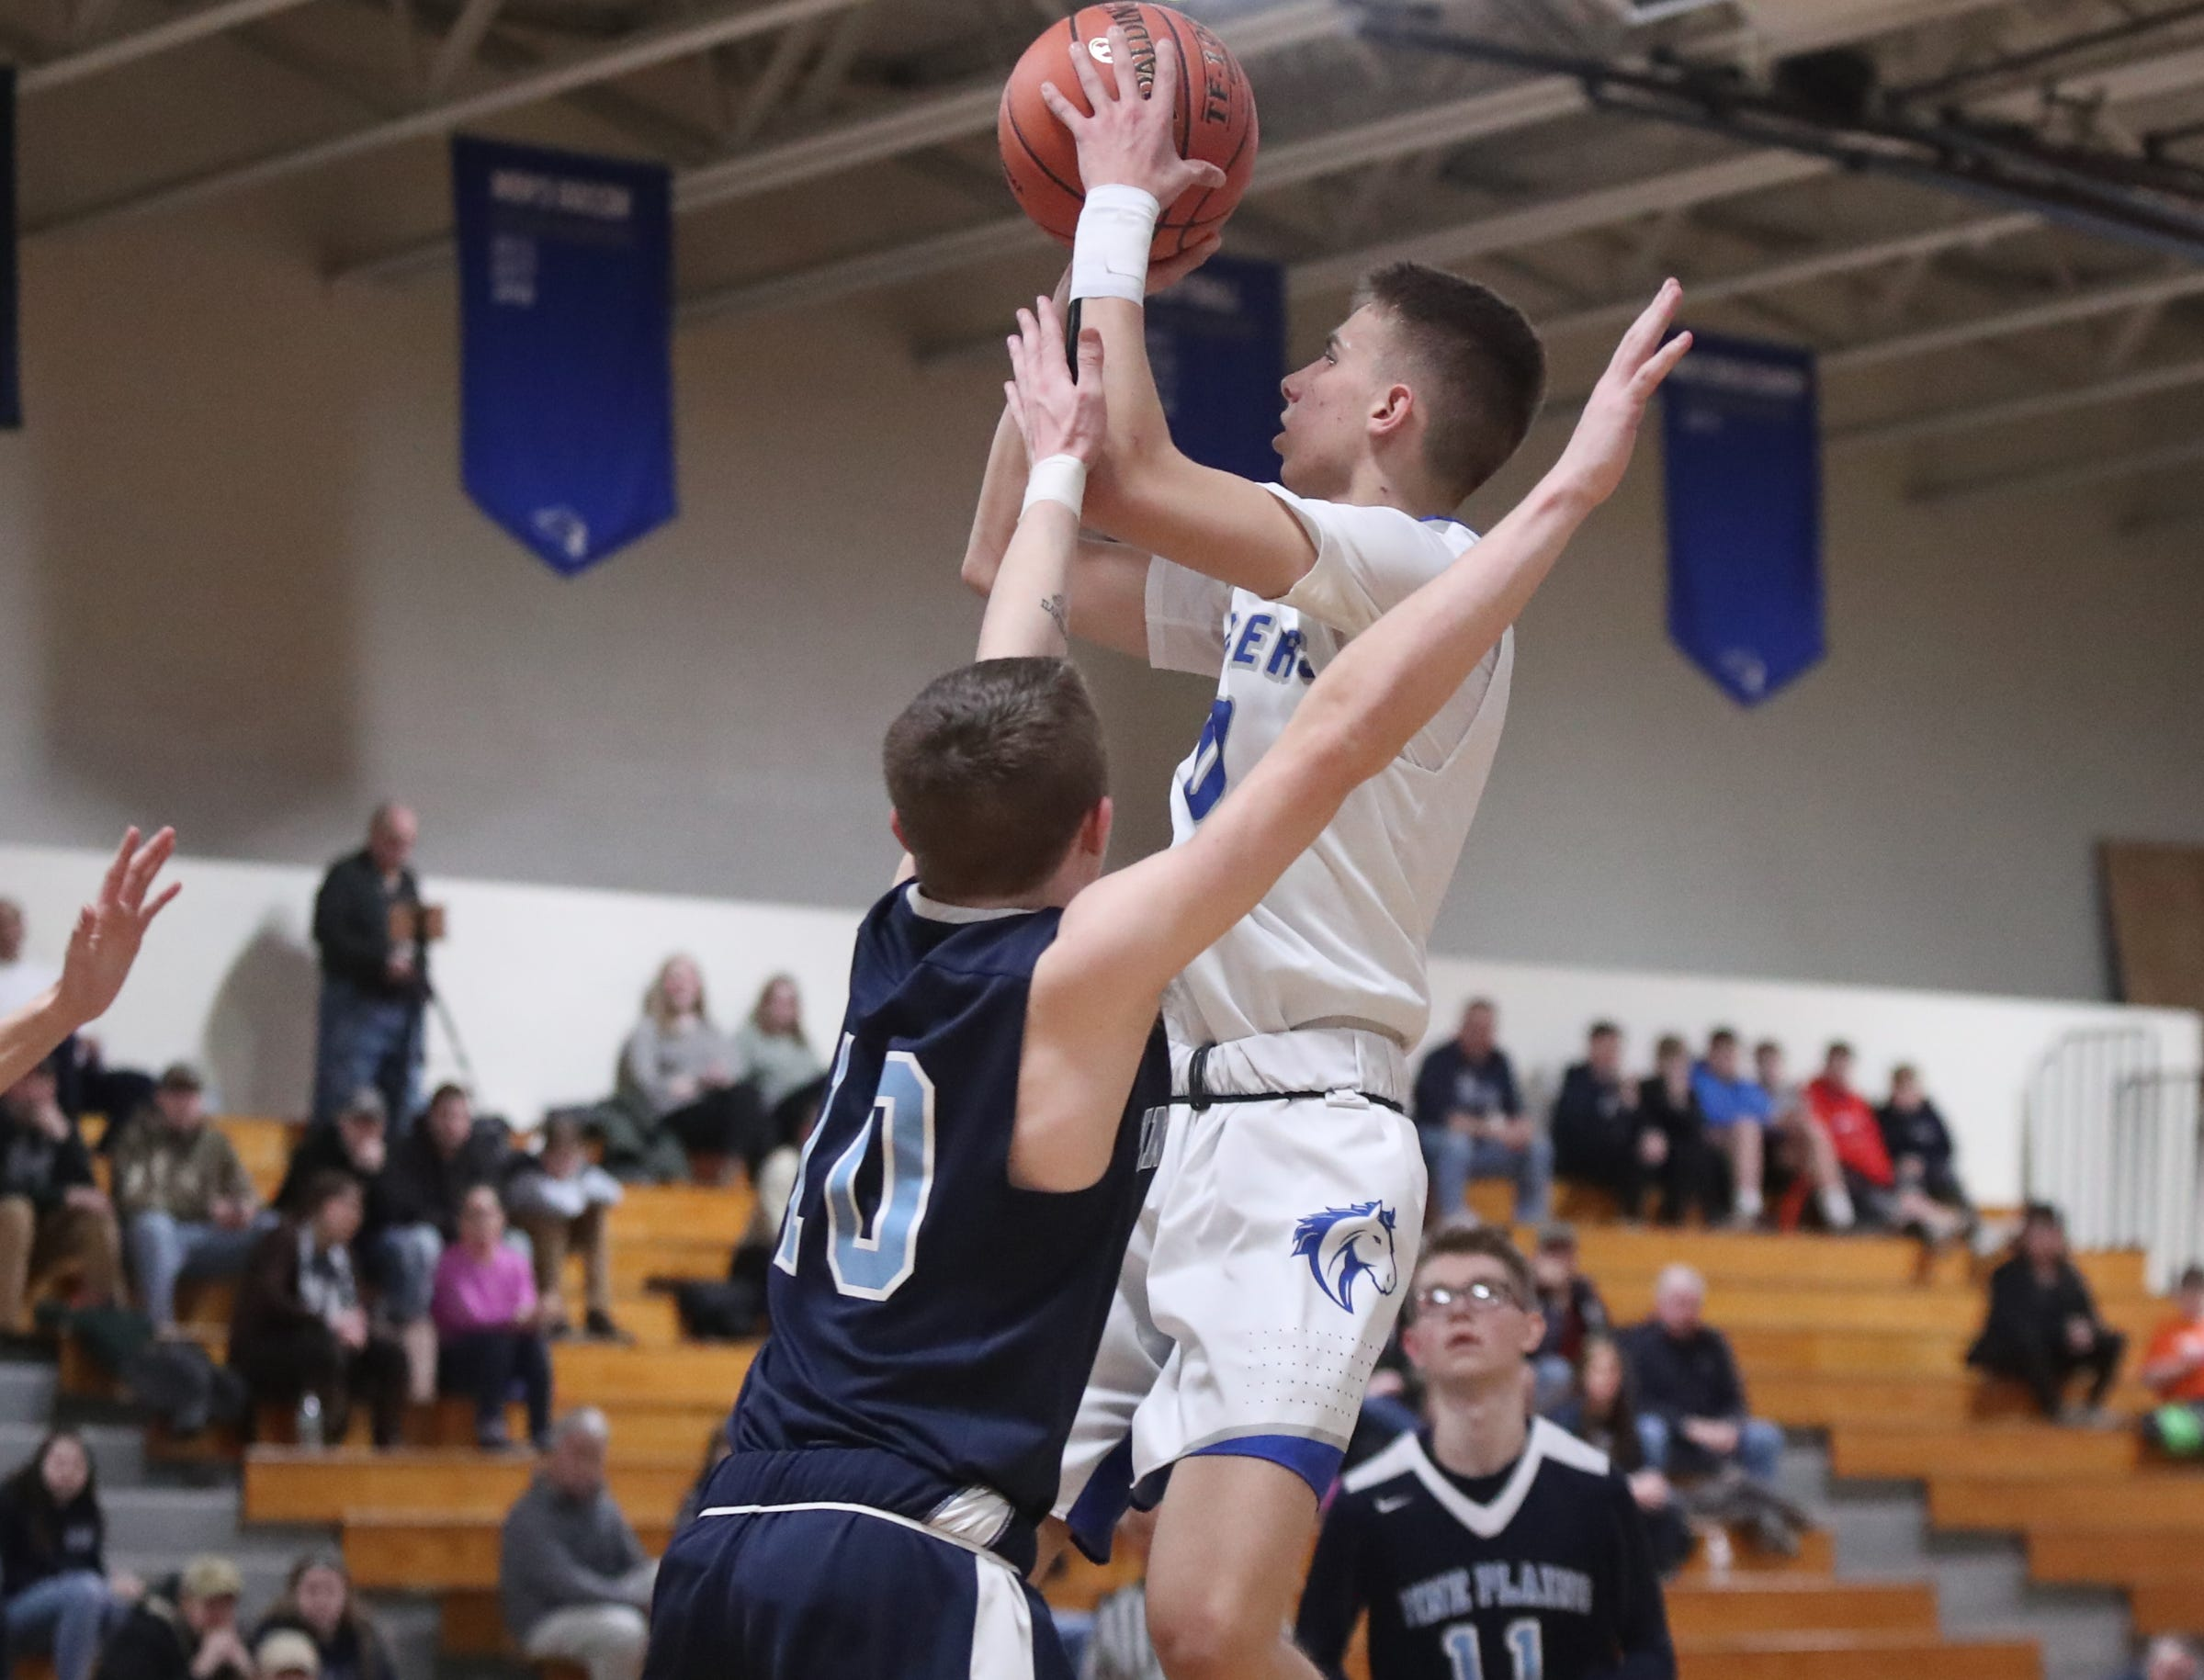 Millbrook's Jake Daly (0) drives on Pine Plains' Calab McCaul (10) in the boys basketball Class C section final basketball game at Mount St. Mary College in Newburgh on Thursday, February 28, 2019.